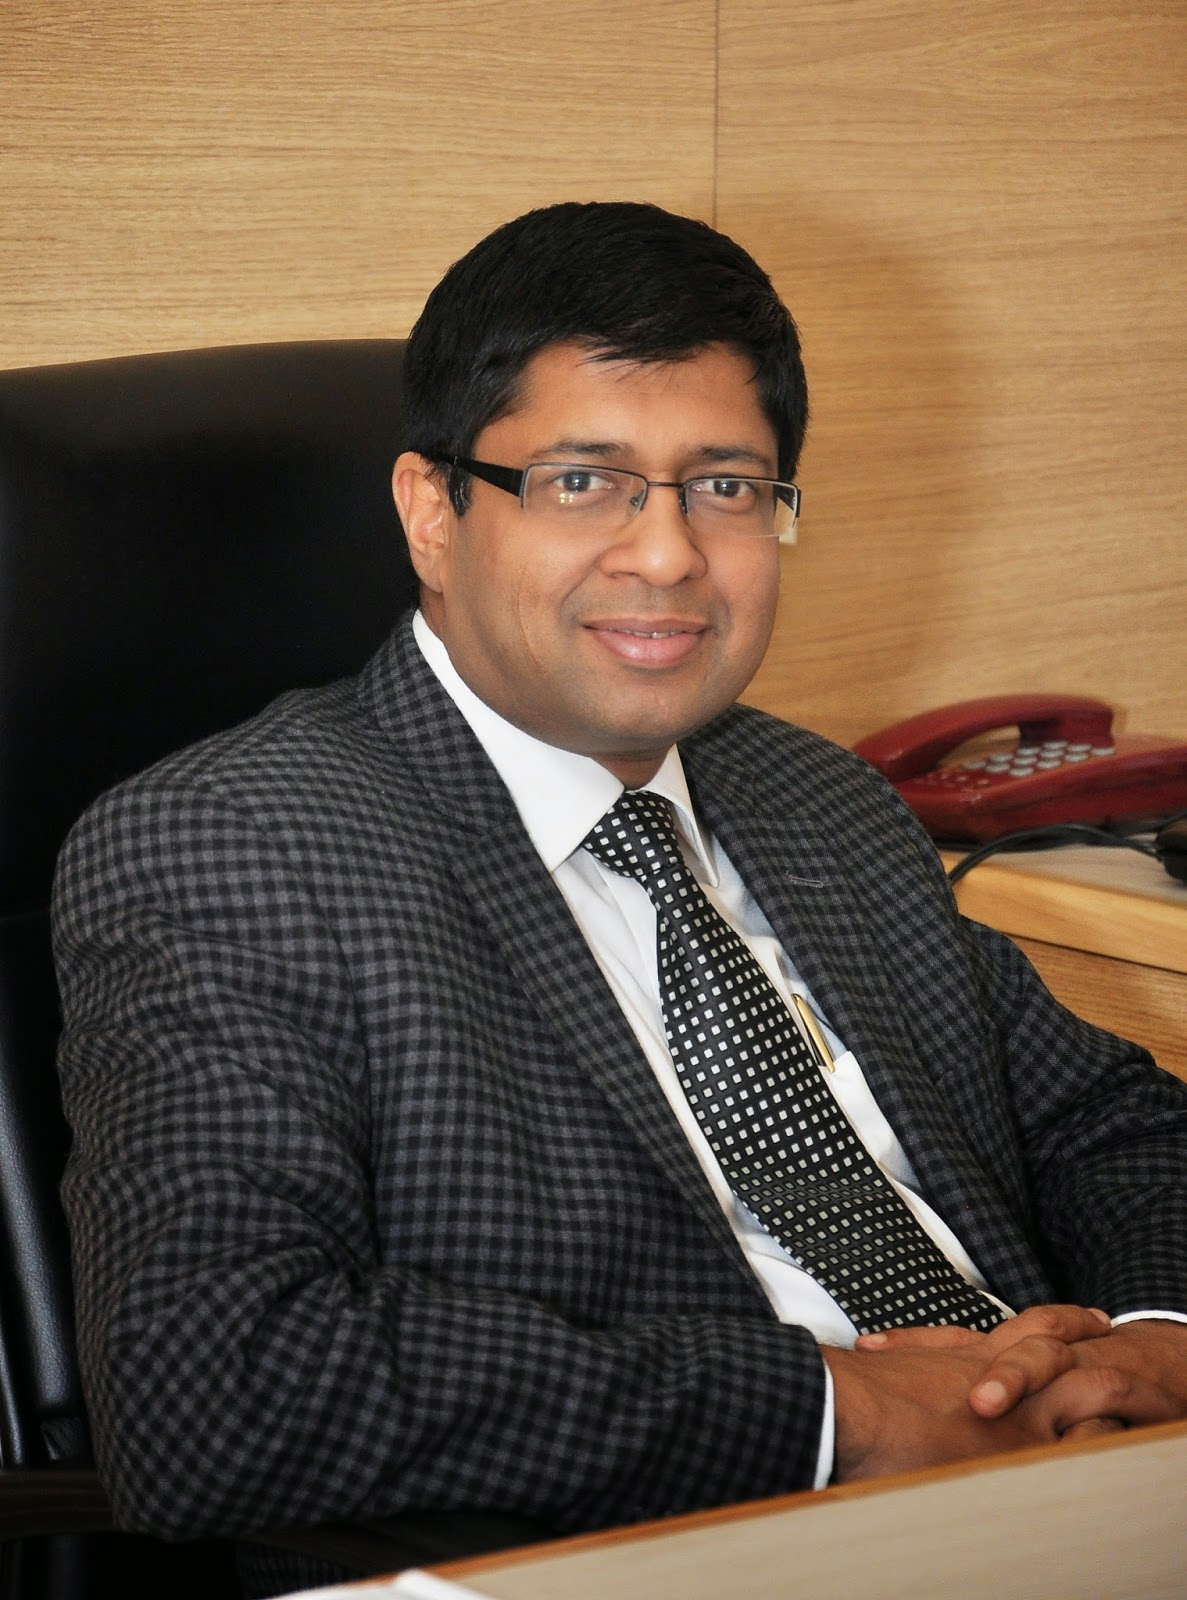 Mr Rohit Aggarwal, Founder and CEO of Koenig Solutions.